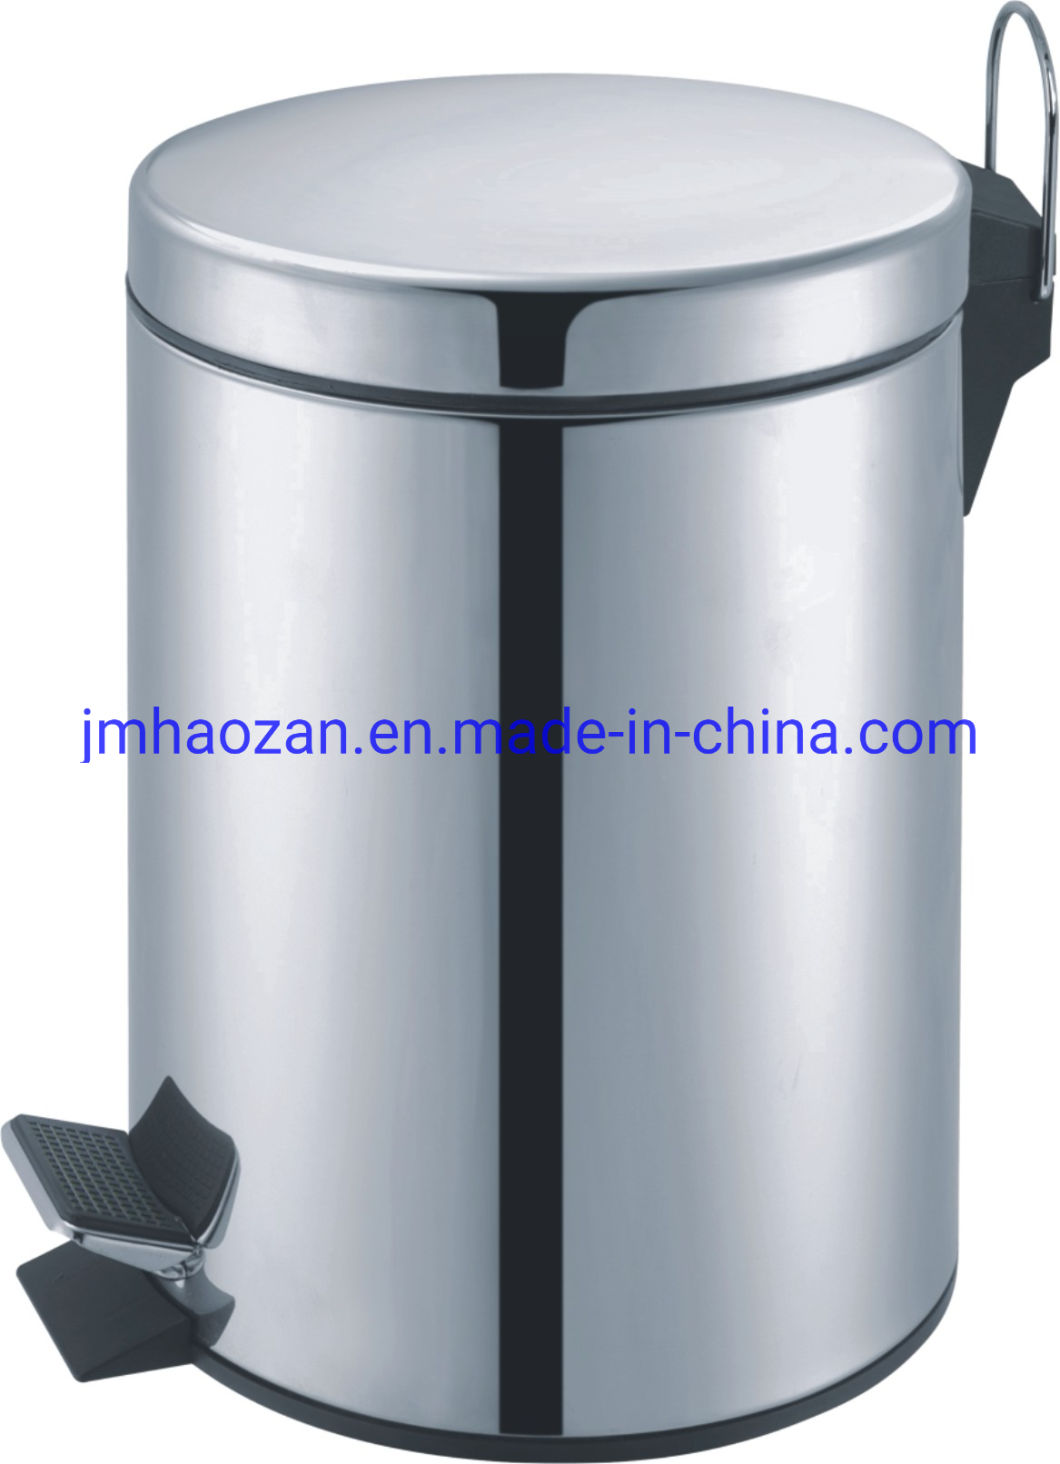 Soft Close Stainless Steel Pedal Waste Bin, Dustbin